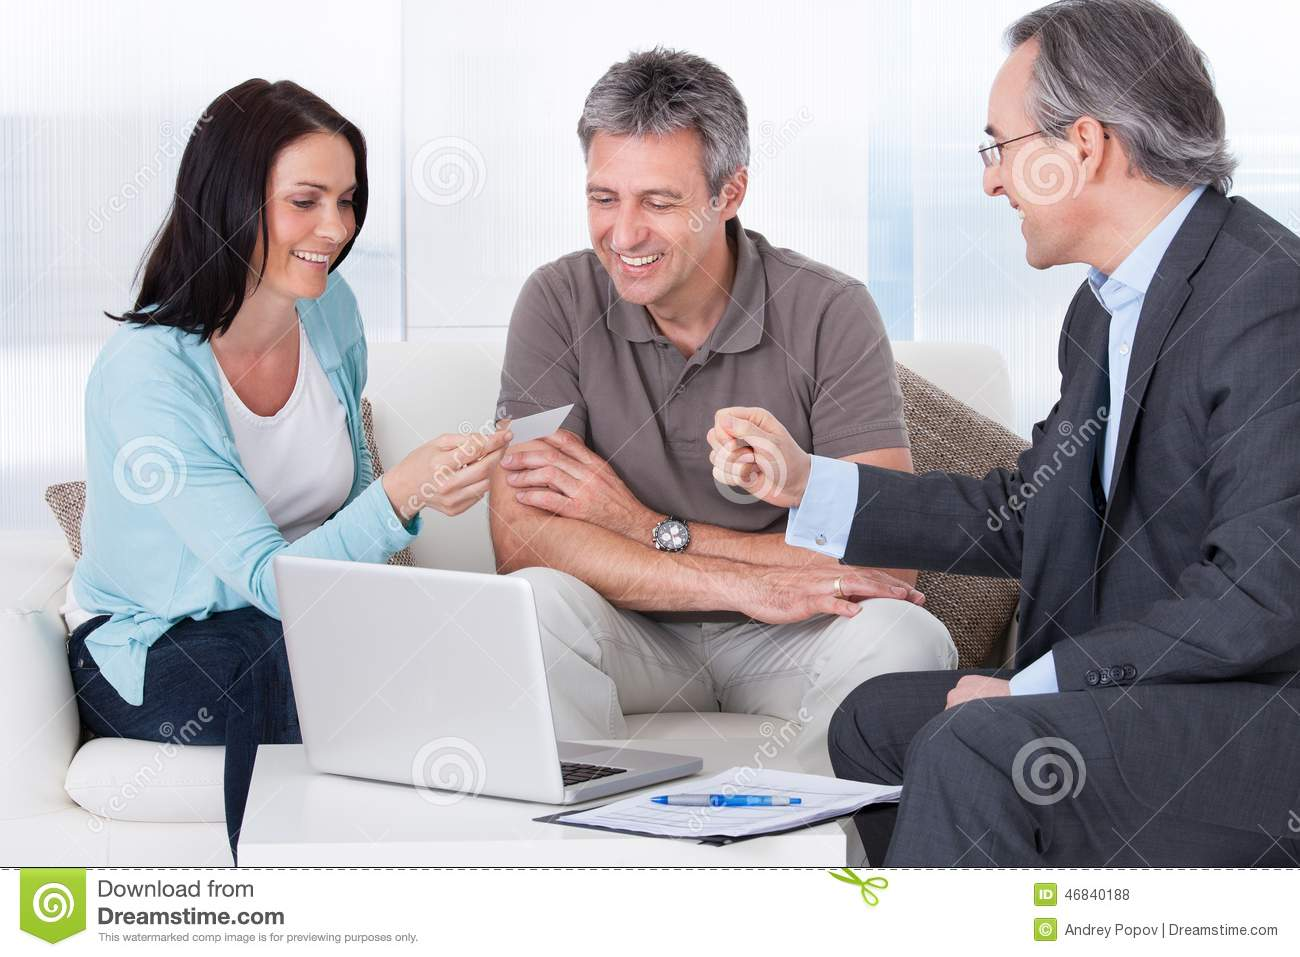 Consultant offering business card to couple